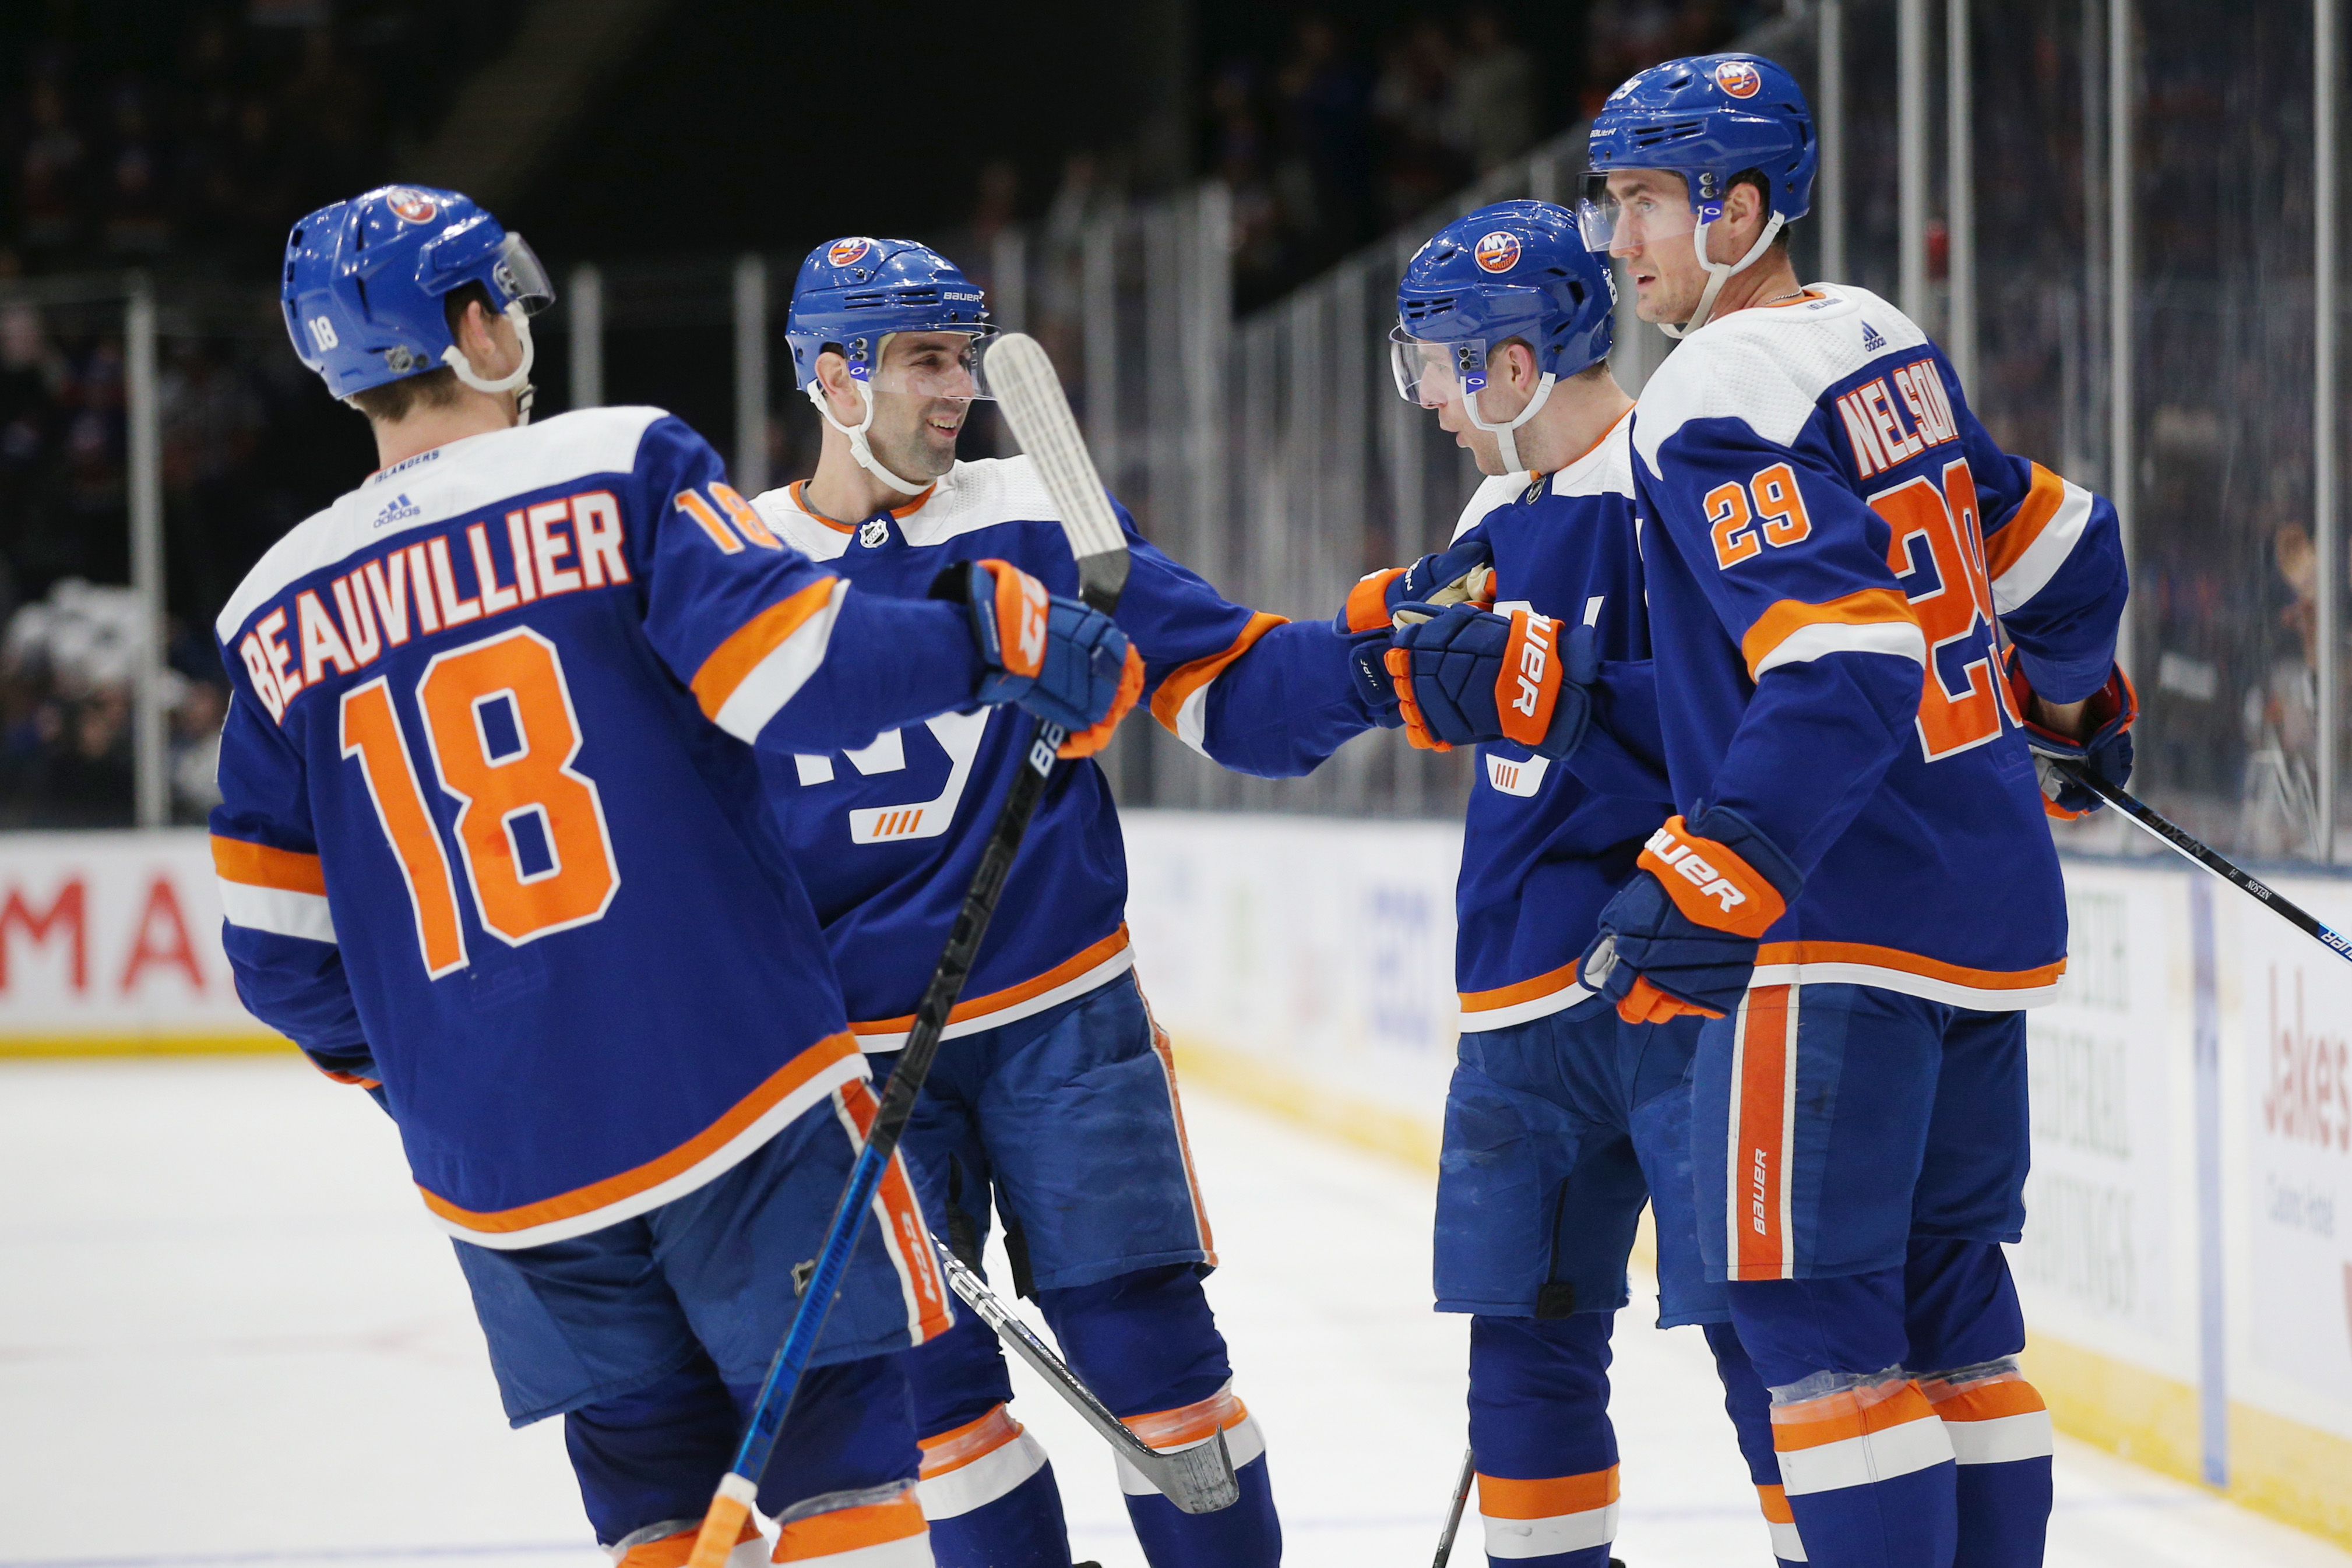 Feb 23, 2020; Uniondale, New York, USA; New York Islanders defenseman Devon Toews (25) celebrates his goal against the San Jose Sharks with teammates during the second period at Nassau Veterans Memorial Coliseum. Mandatory Credit: Brad Penner-USA TODAY Sports